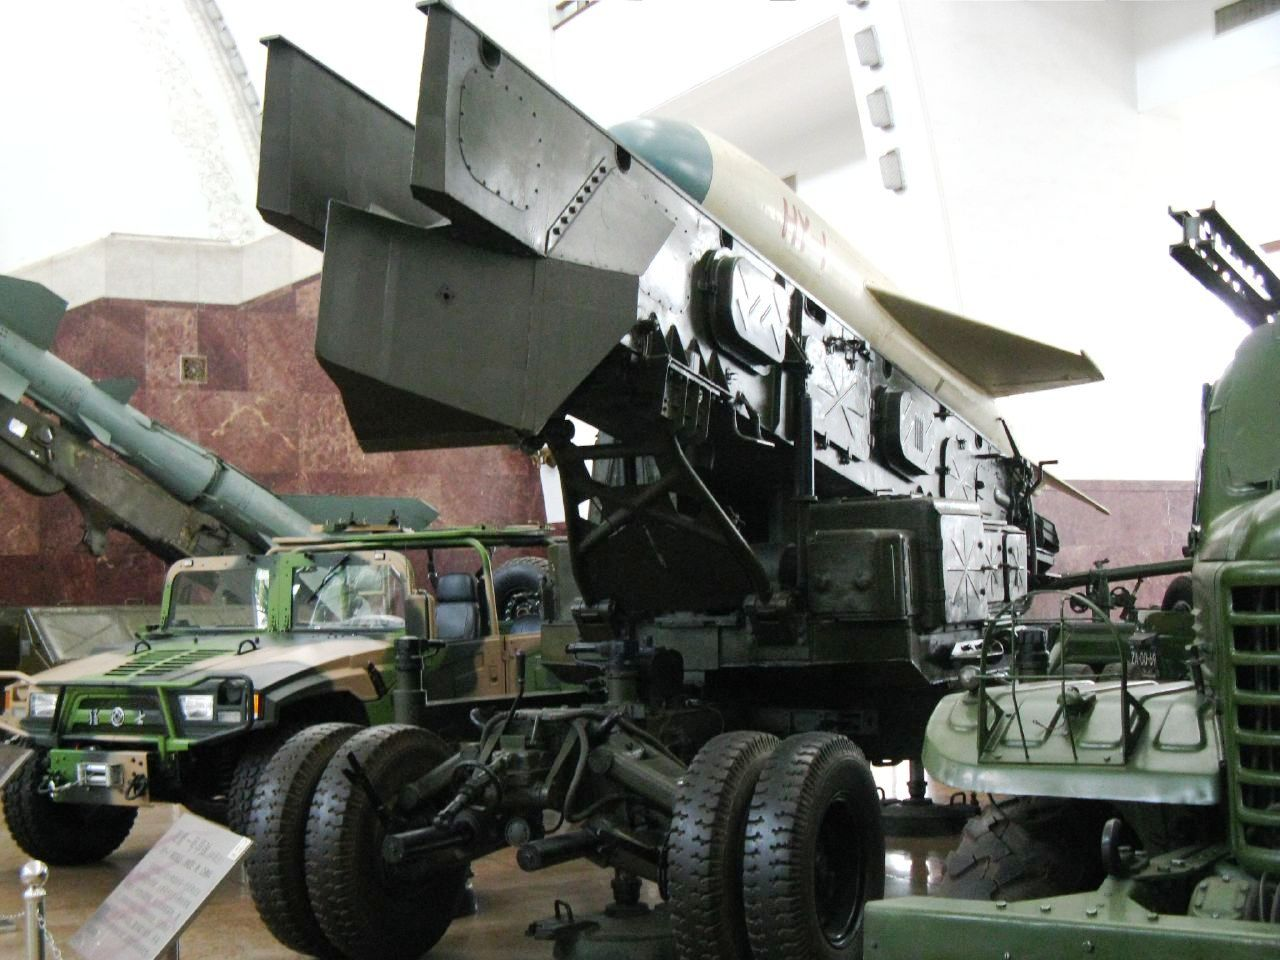 A ground-launch system for the obsolete HY-1 system. While the HY-1 itself is a very old design, upgraded versions of this missiles still serve with the PLA.